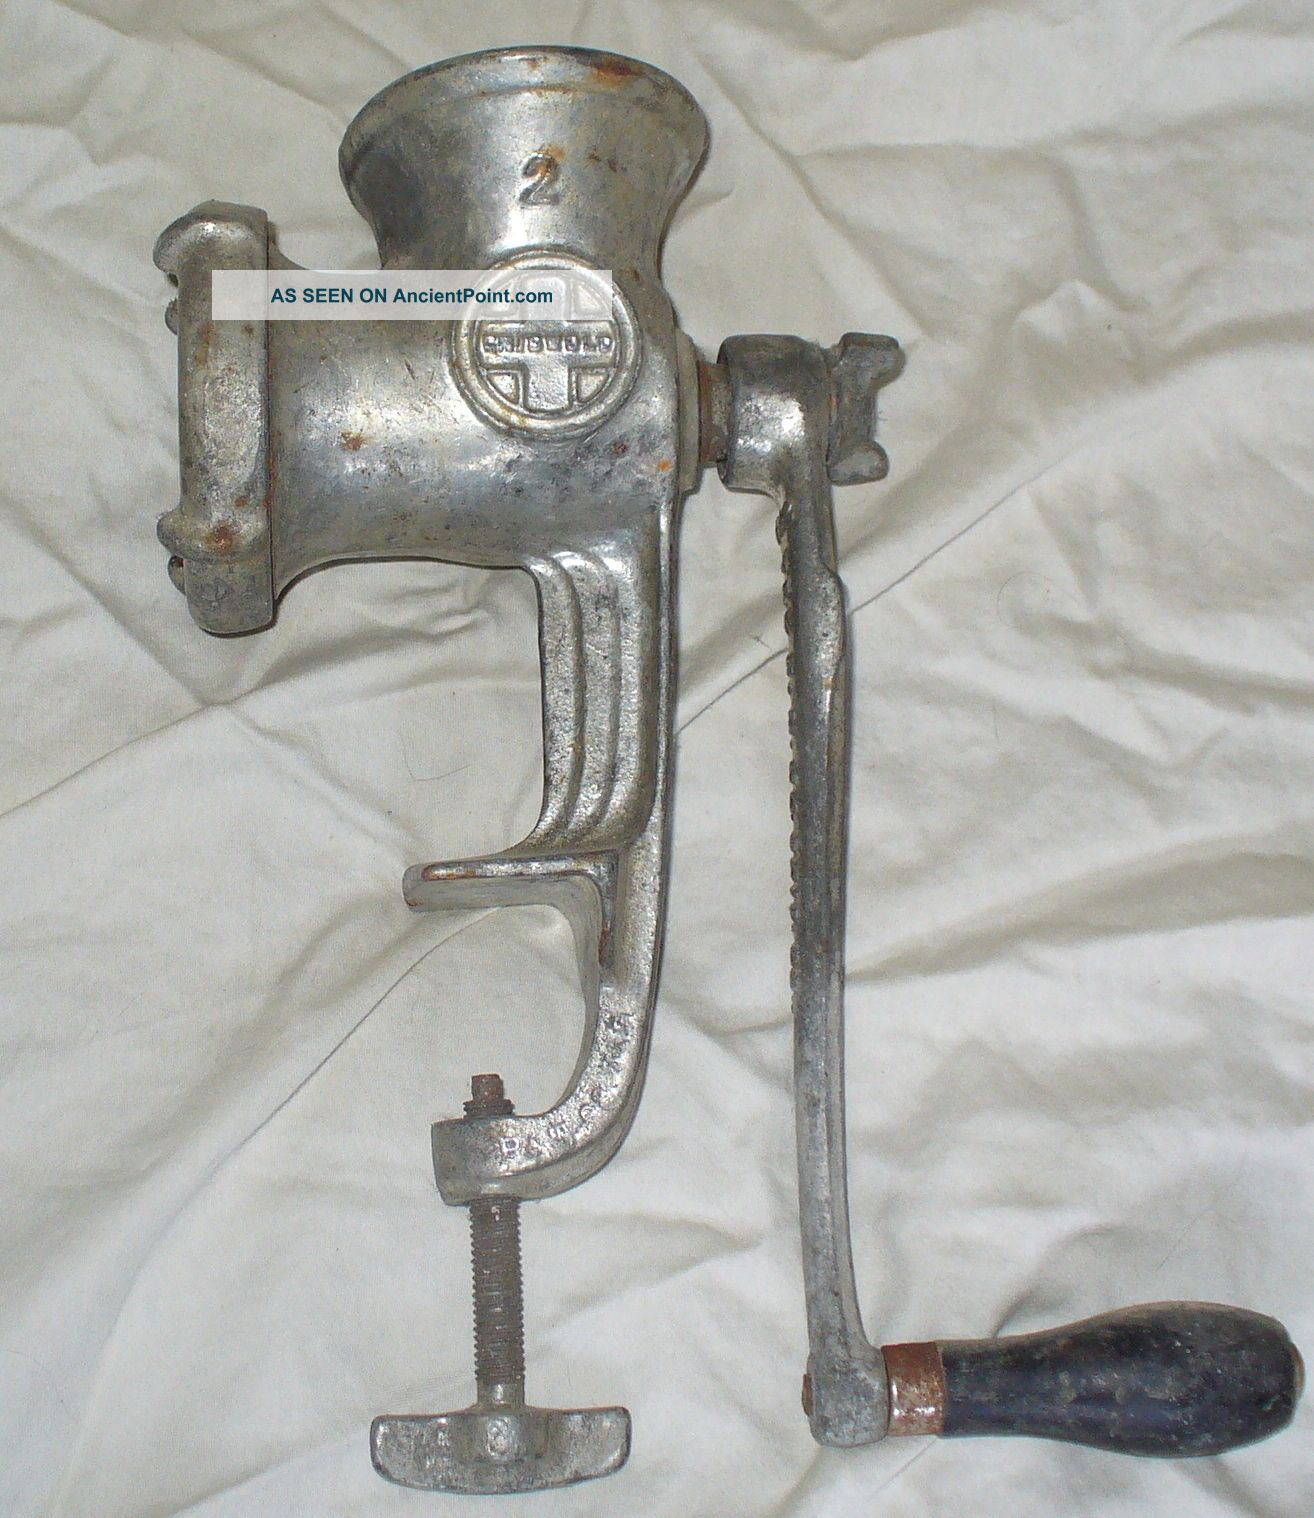 Antique Griswold 2 Meat Grinder Meat Grinders photo